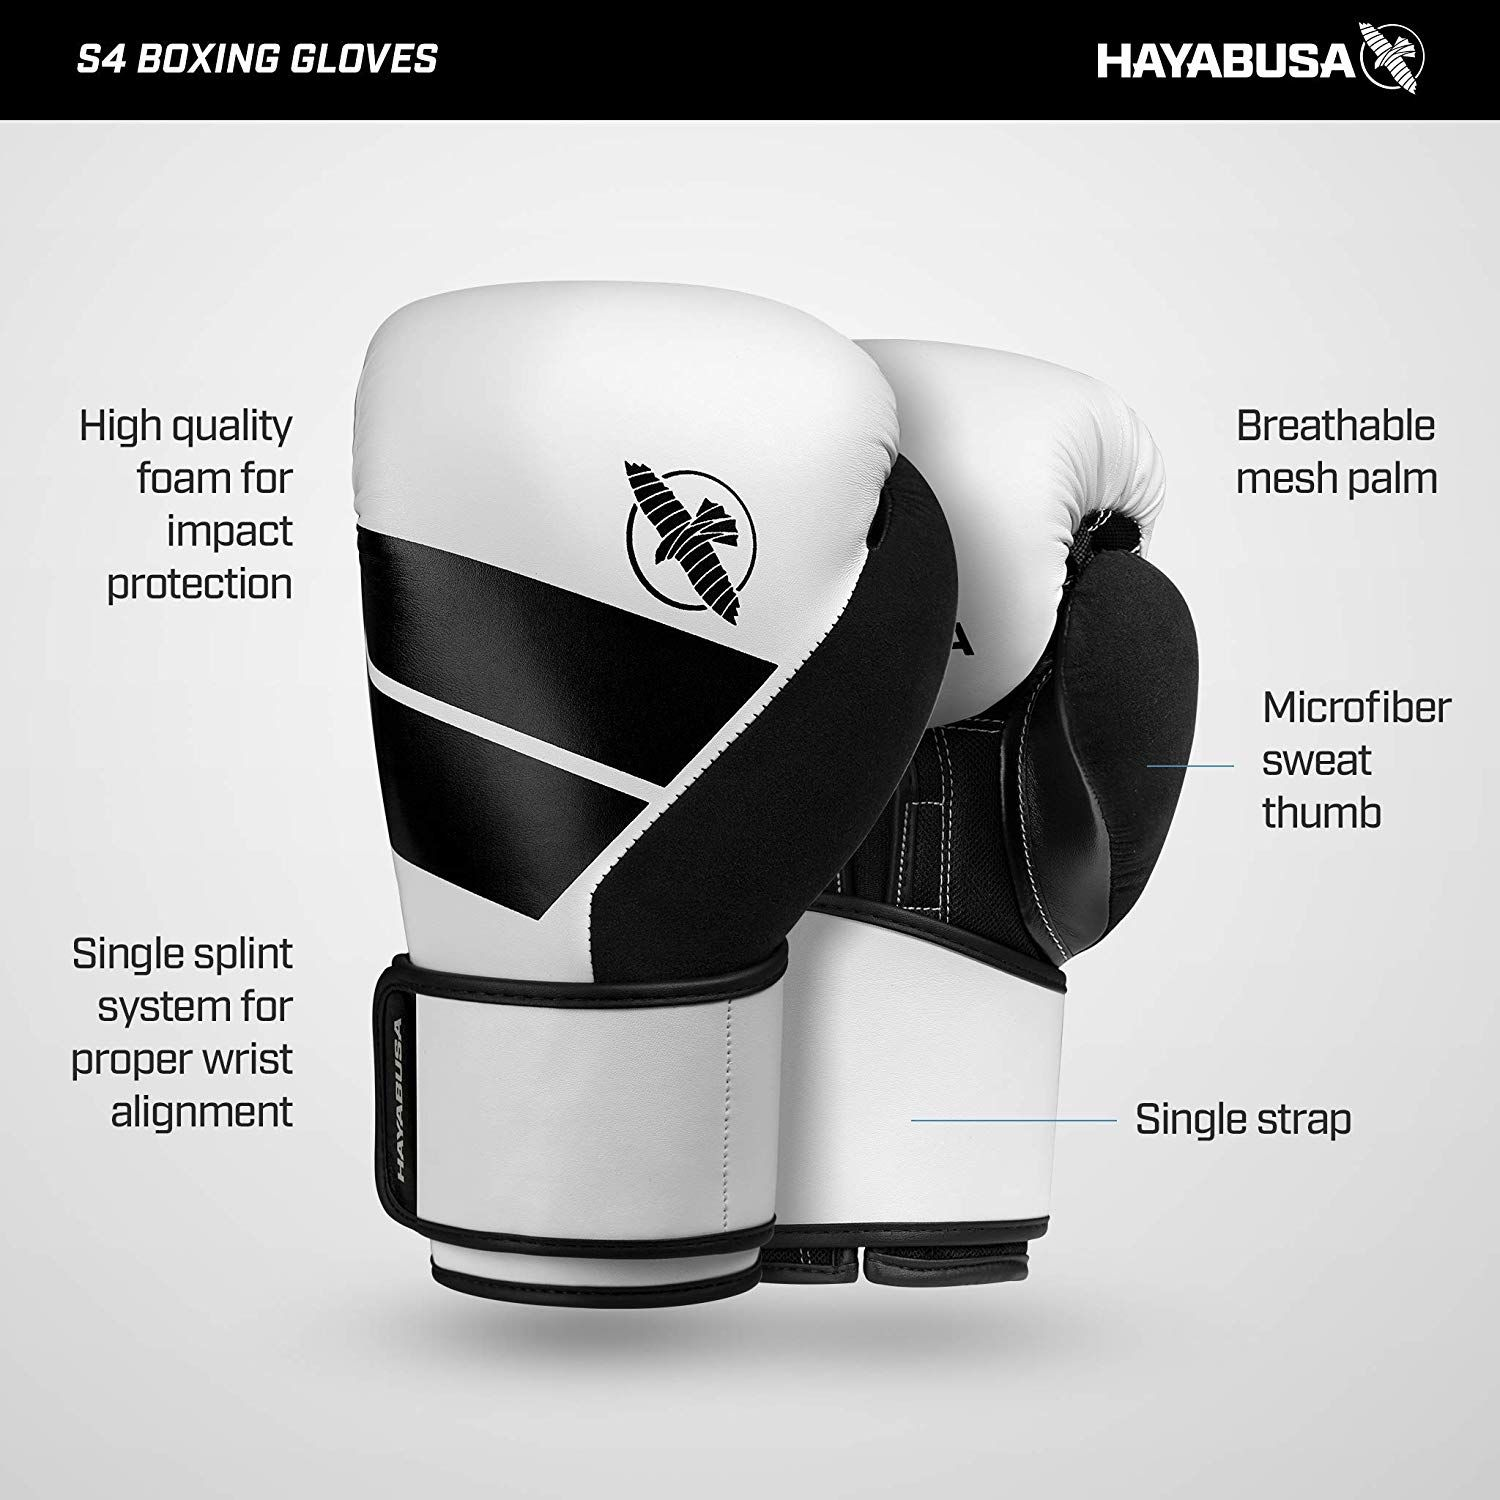 4a73f46f362e0 Amazon.com : Hayabusa Boxing S4 Training Gloves : Sports & Outdoors ...